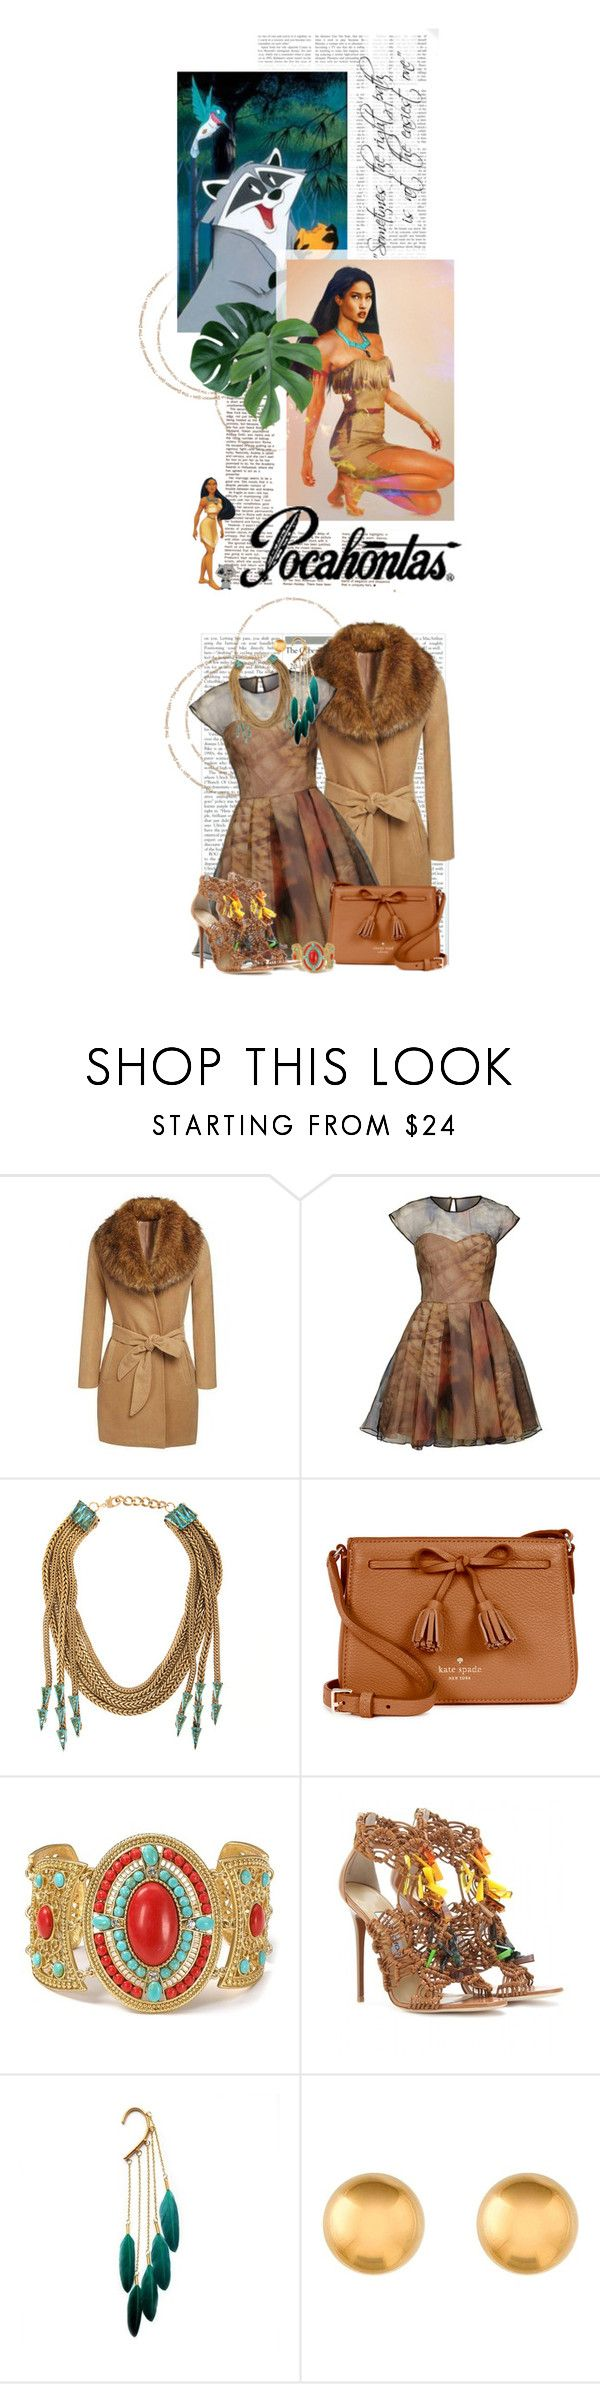 """Pocahontas"" by crystal85 ❤ liked on Polyvore featuring Disney, Ted Baker, Nicole Romano, Kate Spade, Carolee LUX, Jimmy Choo, disney and pocahontas"